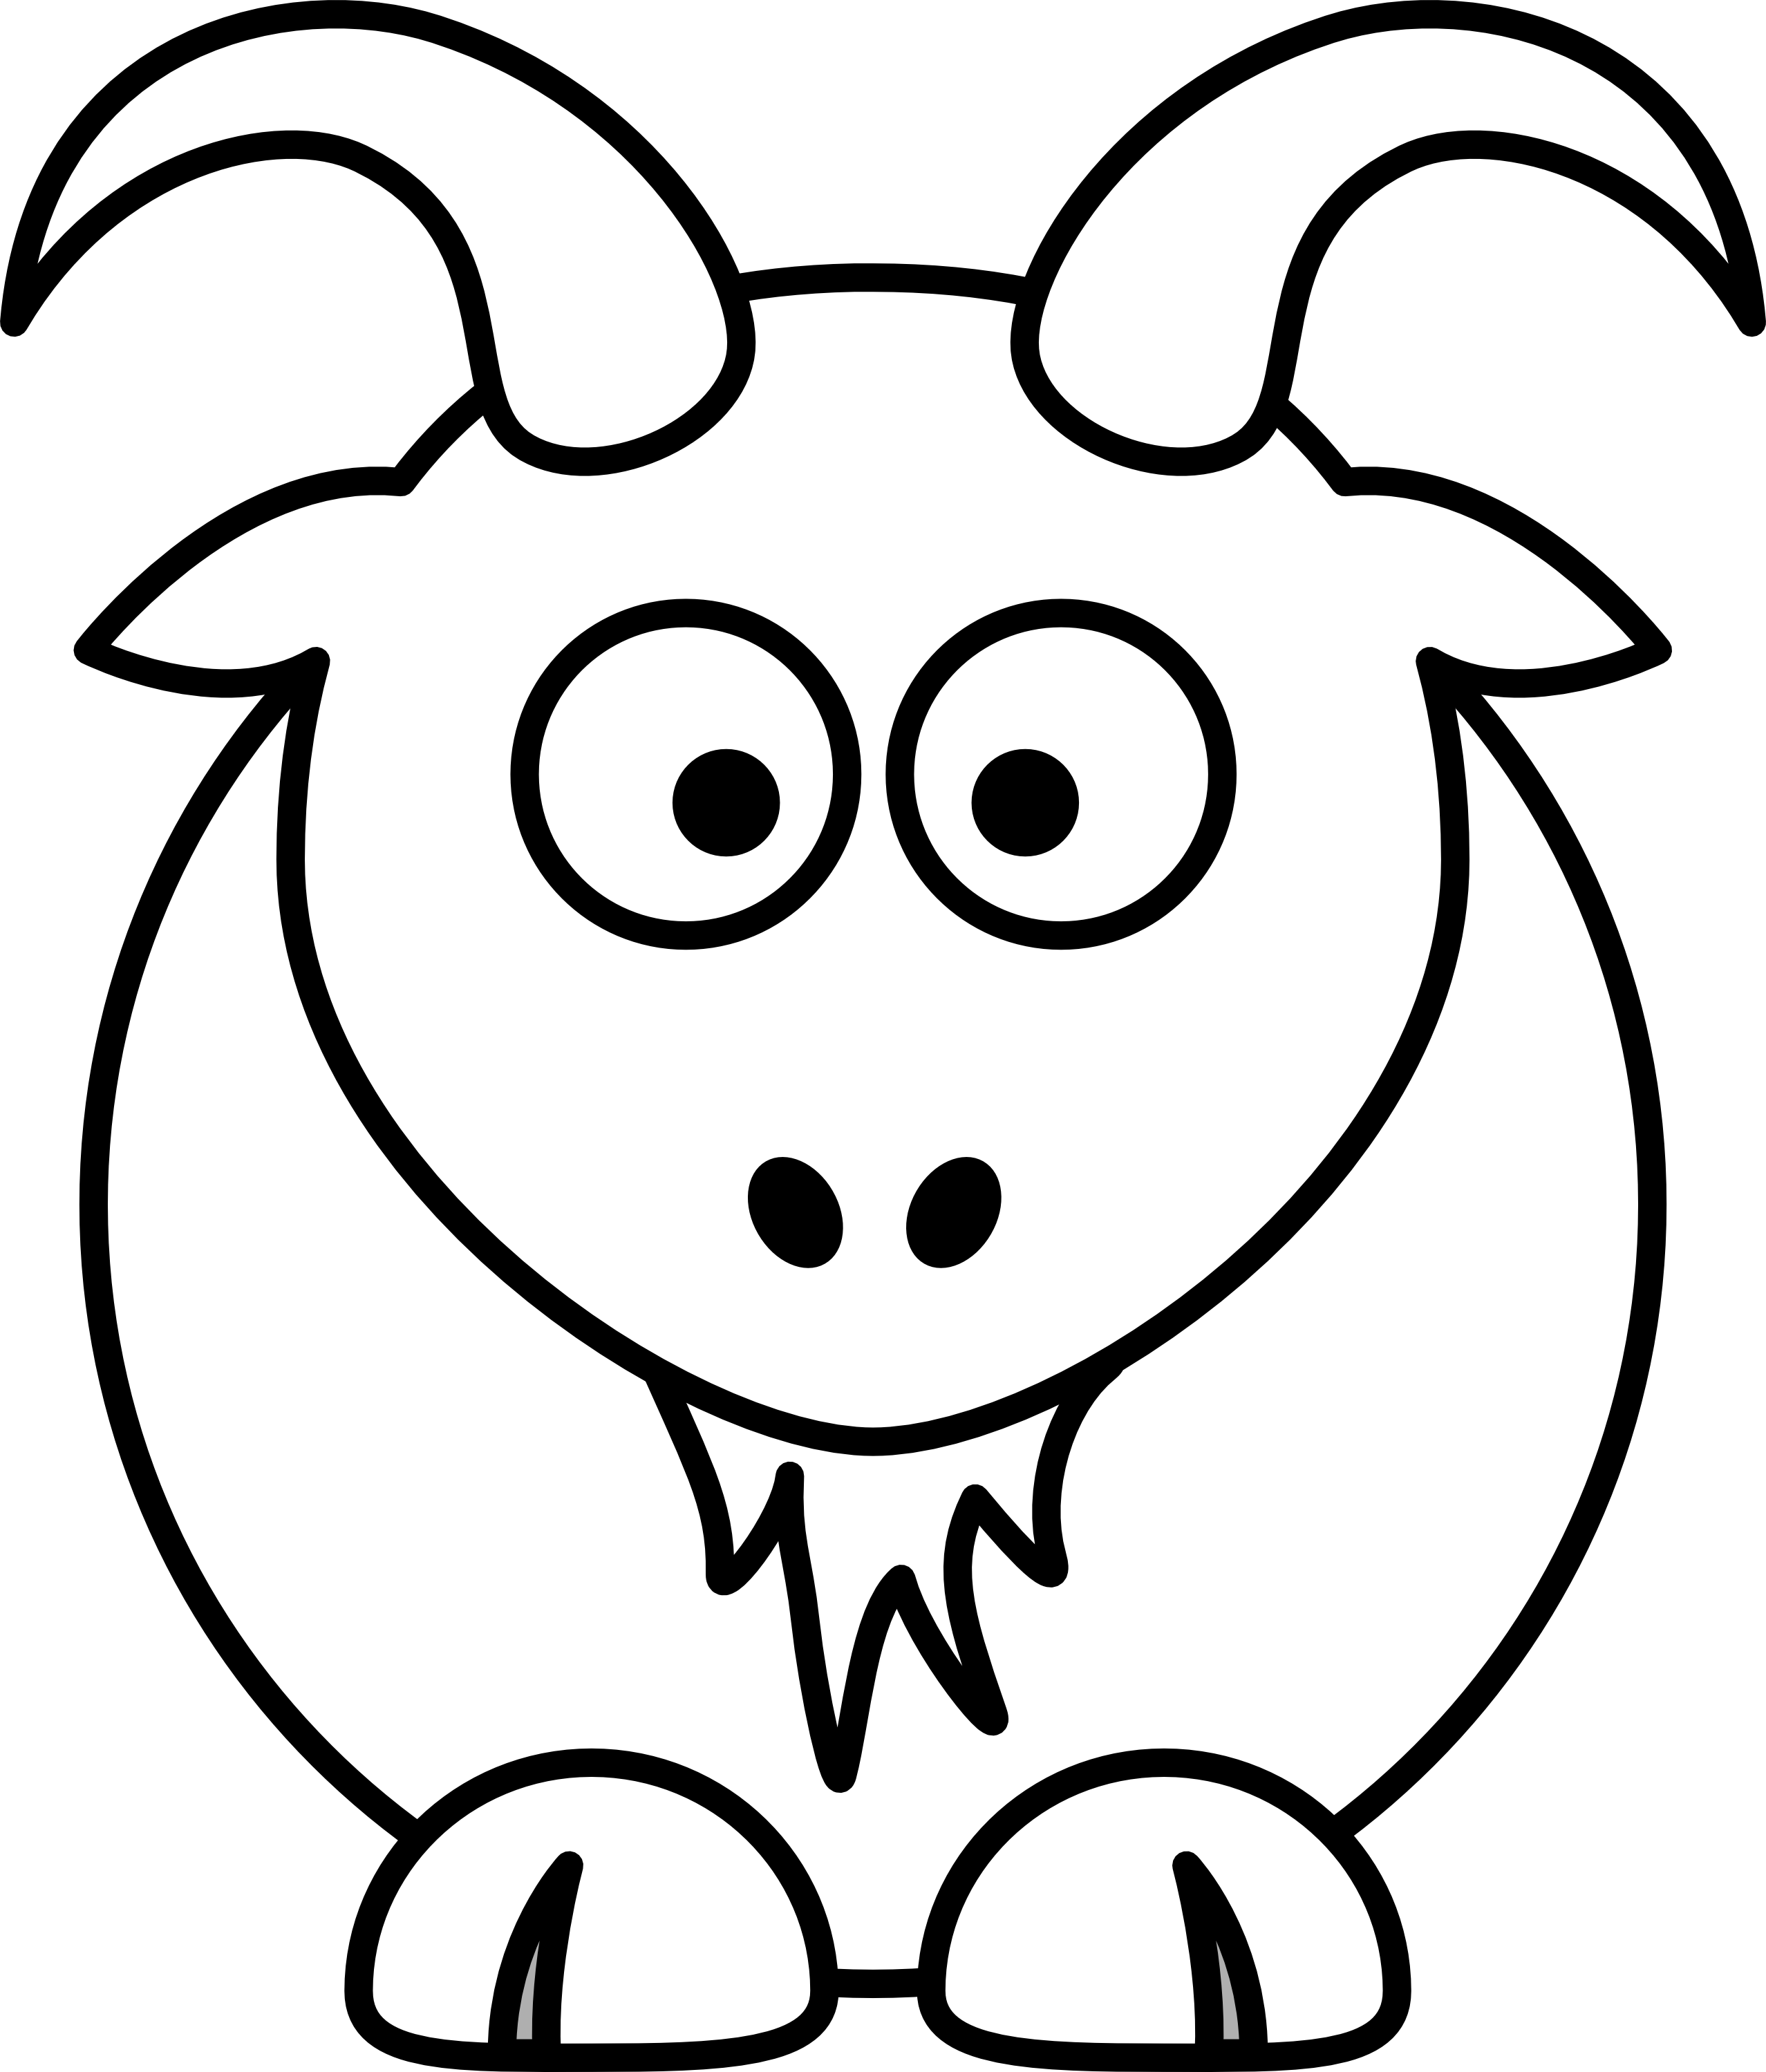 clip art royalty free Farm animal clipart black and white. Animals best felting pinterest